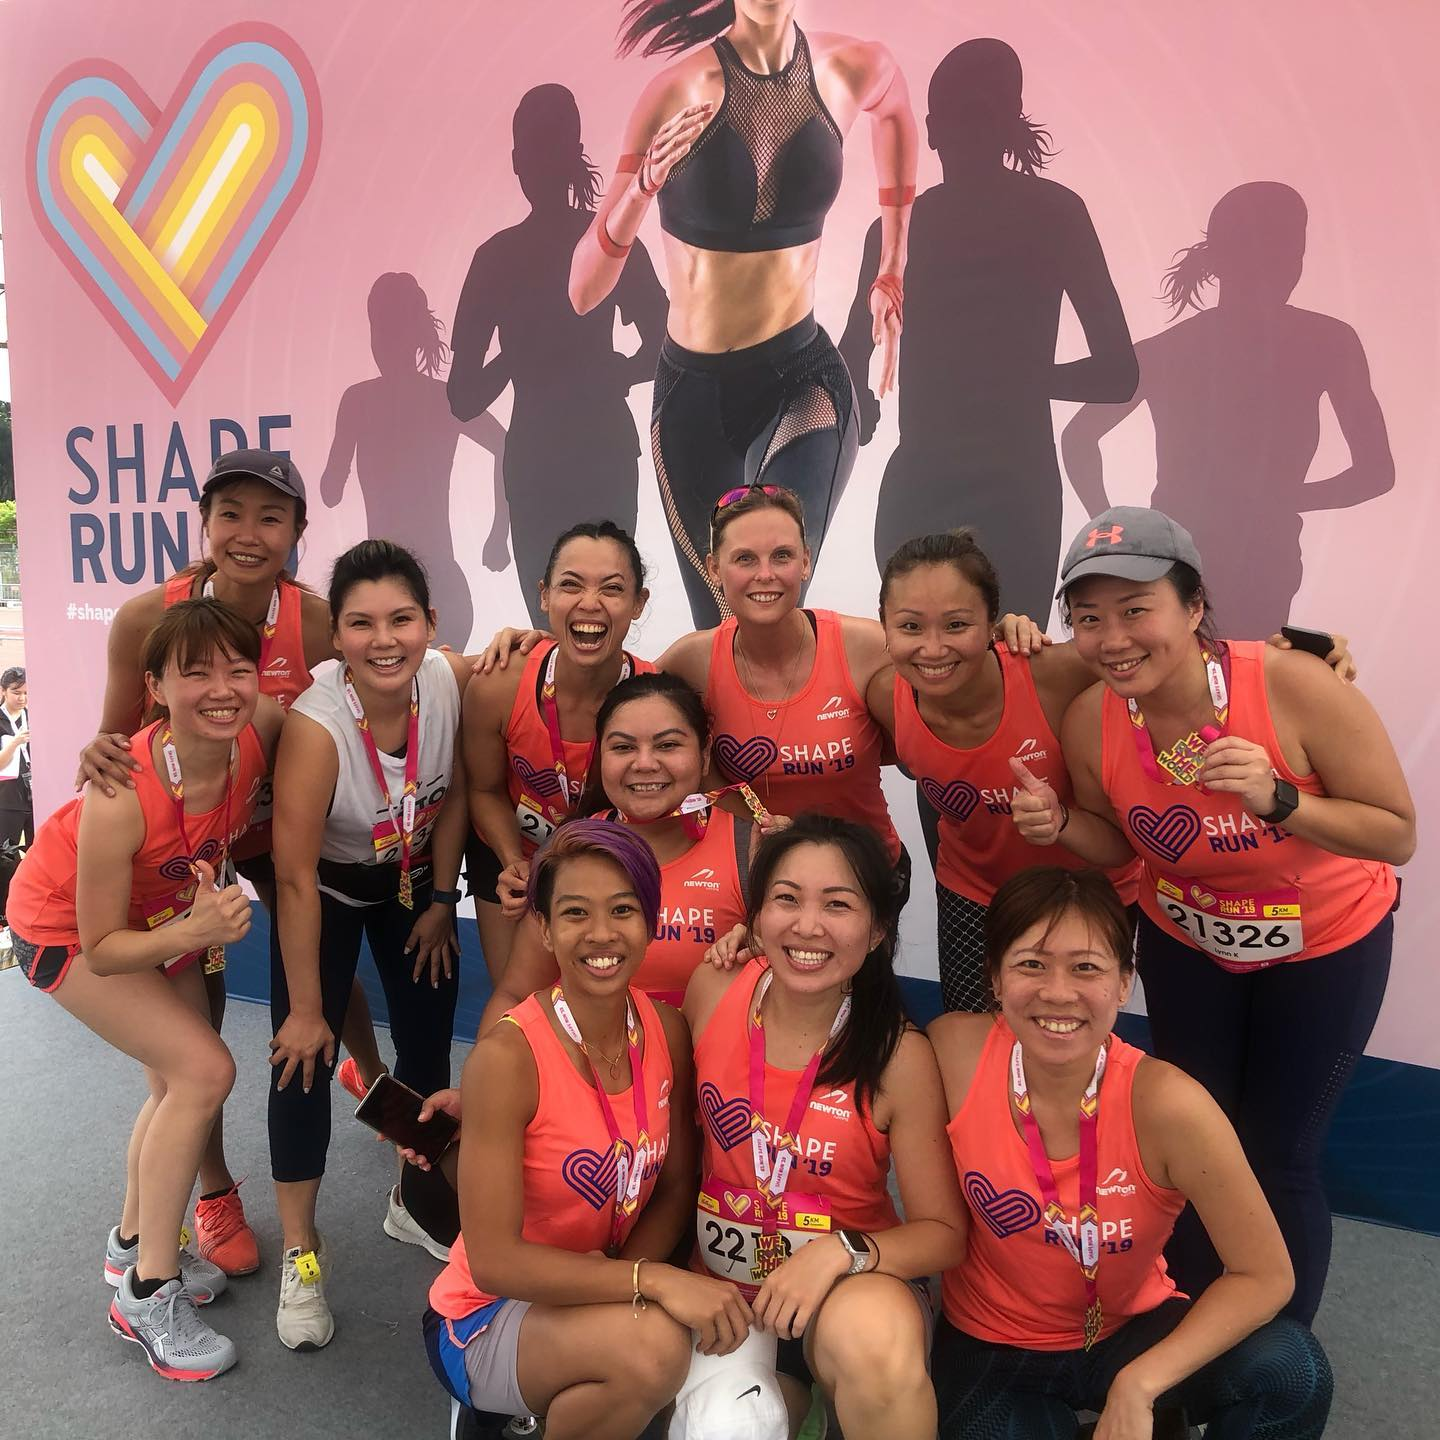 Sarah Cole in group photo after a run